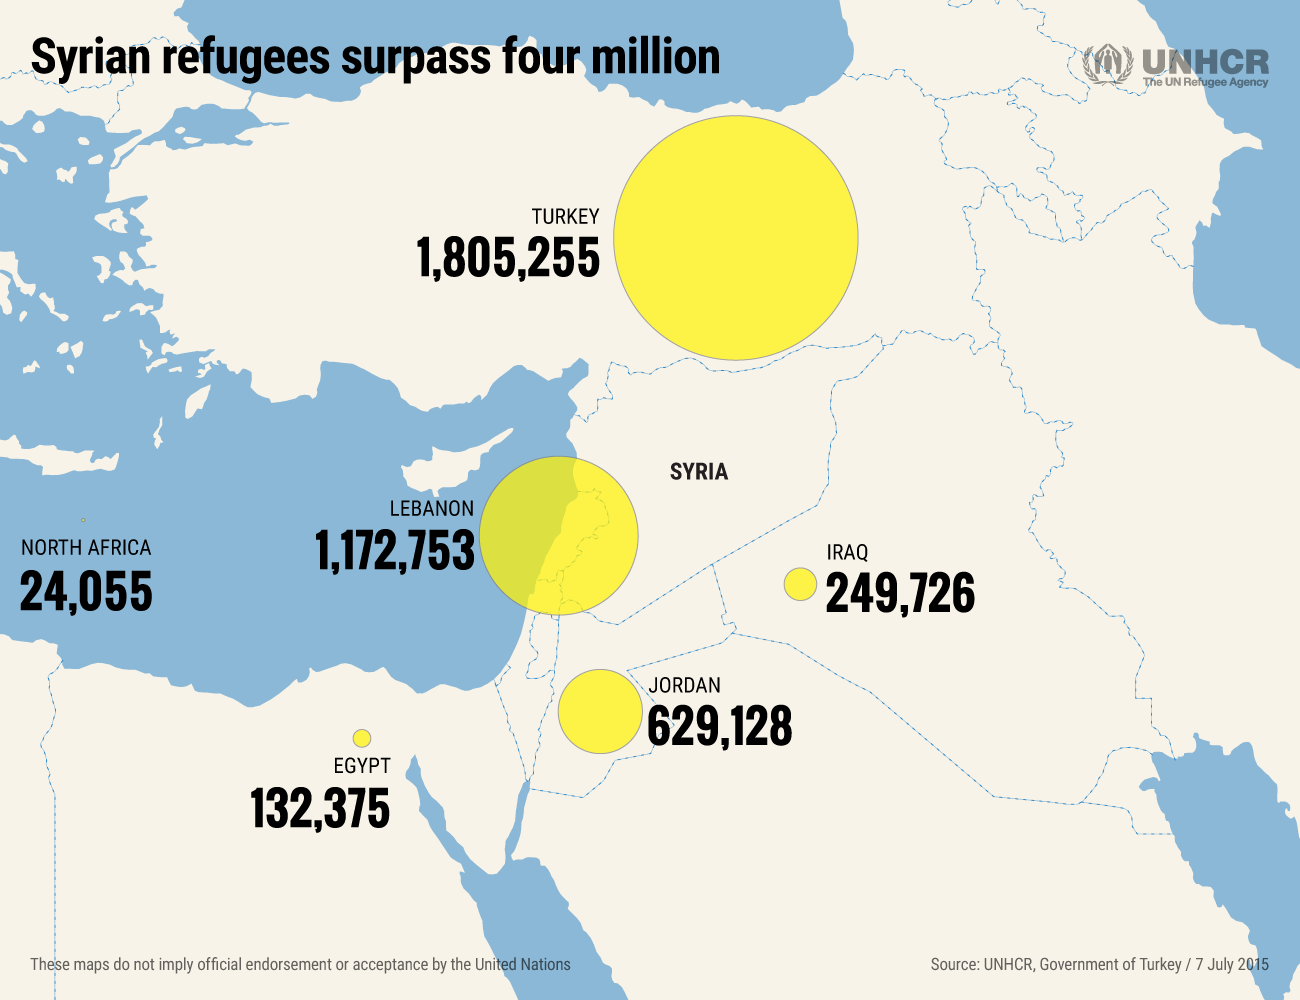 Httppetercliffordonlinesyria iraq news 5 peter middle east africa and europe source courtesy of unhcryounghee lee httptracksunhcr201507four million syrians flee war and persecution gumiabroncs Choice Image